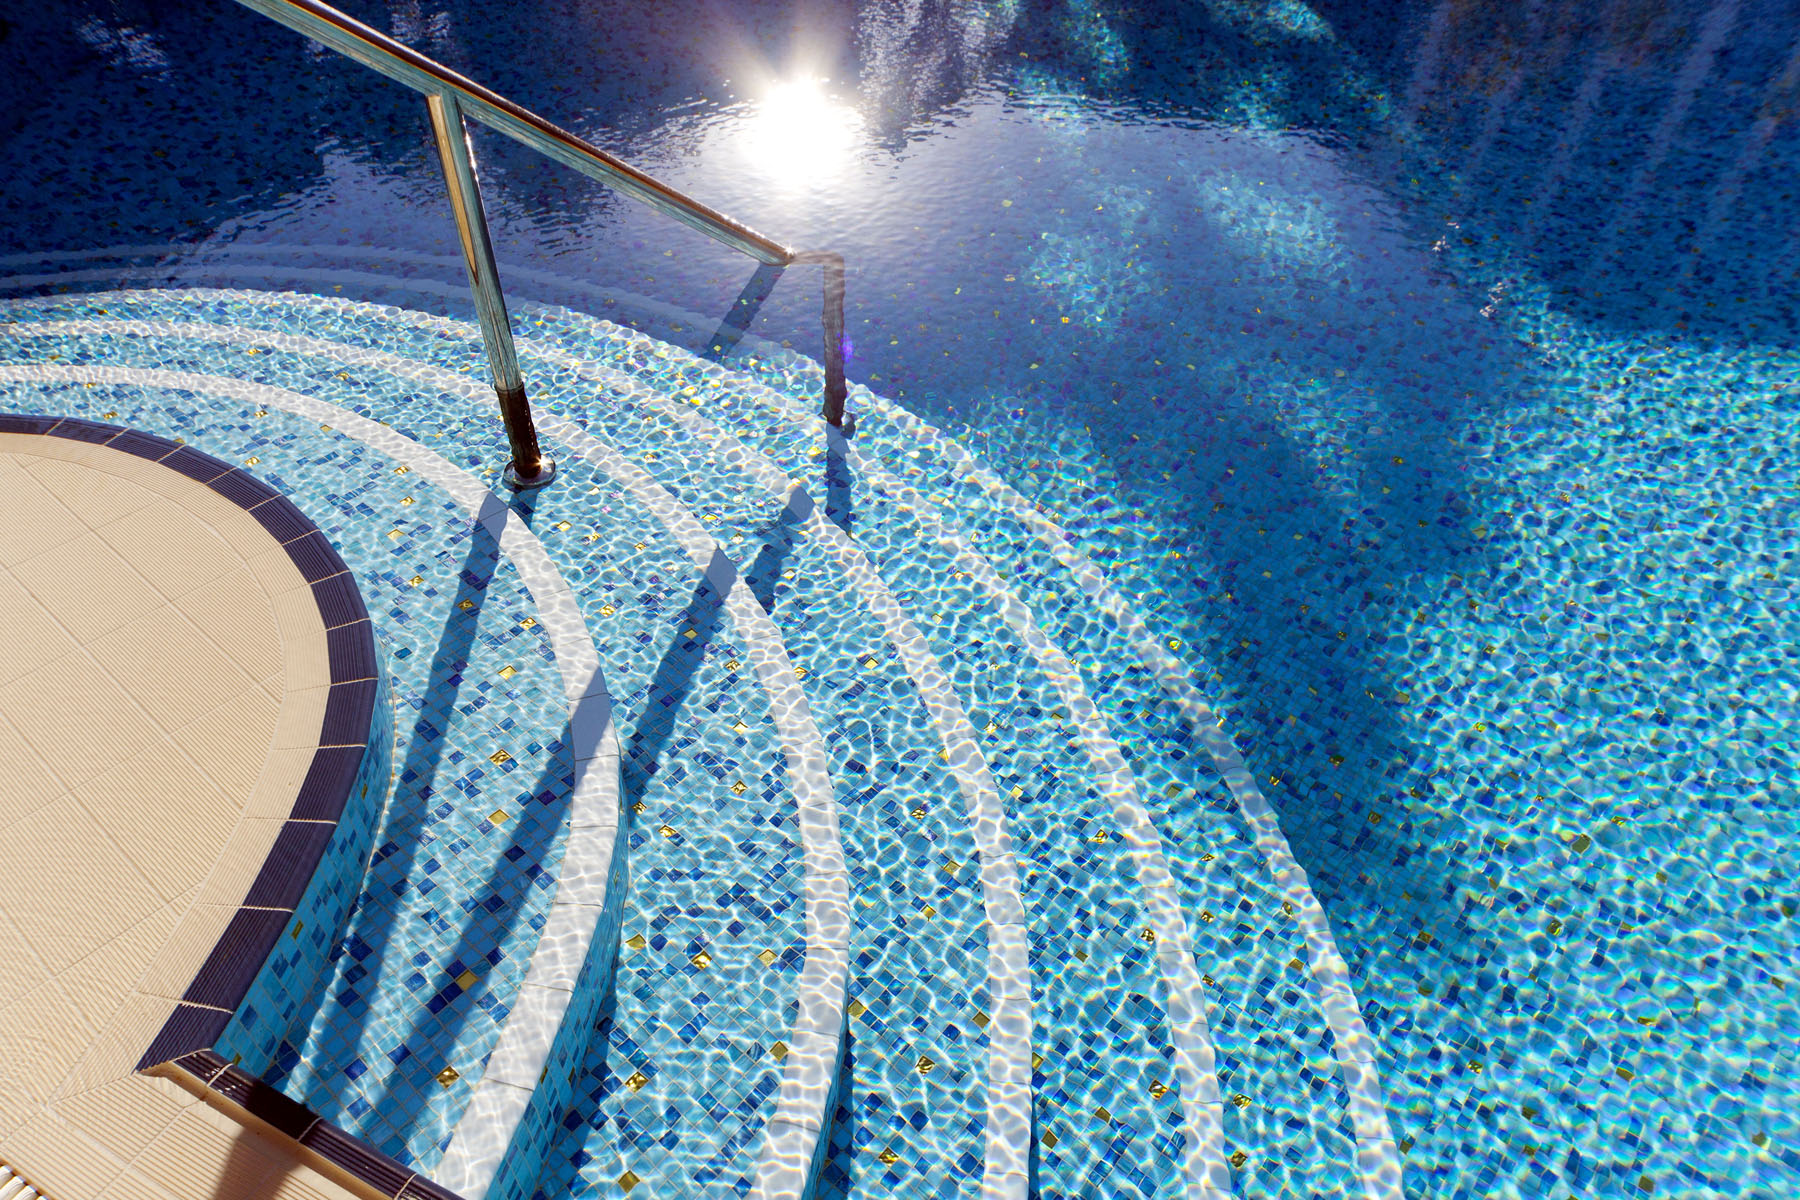 Glass Pool Tiles from Trend.